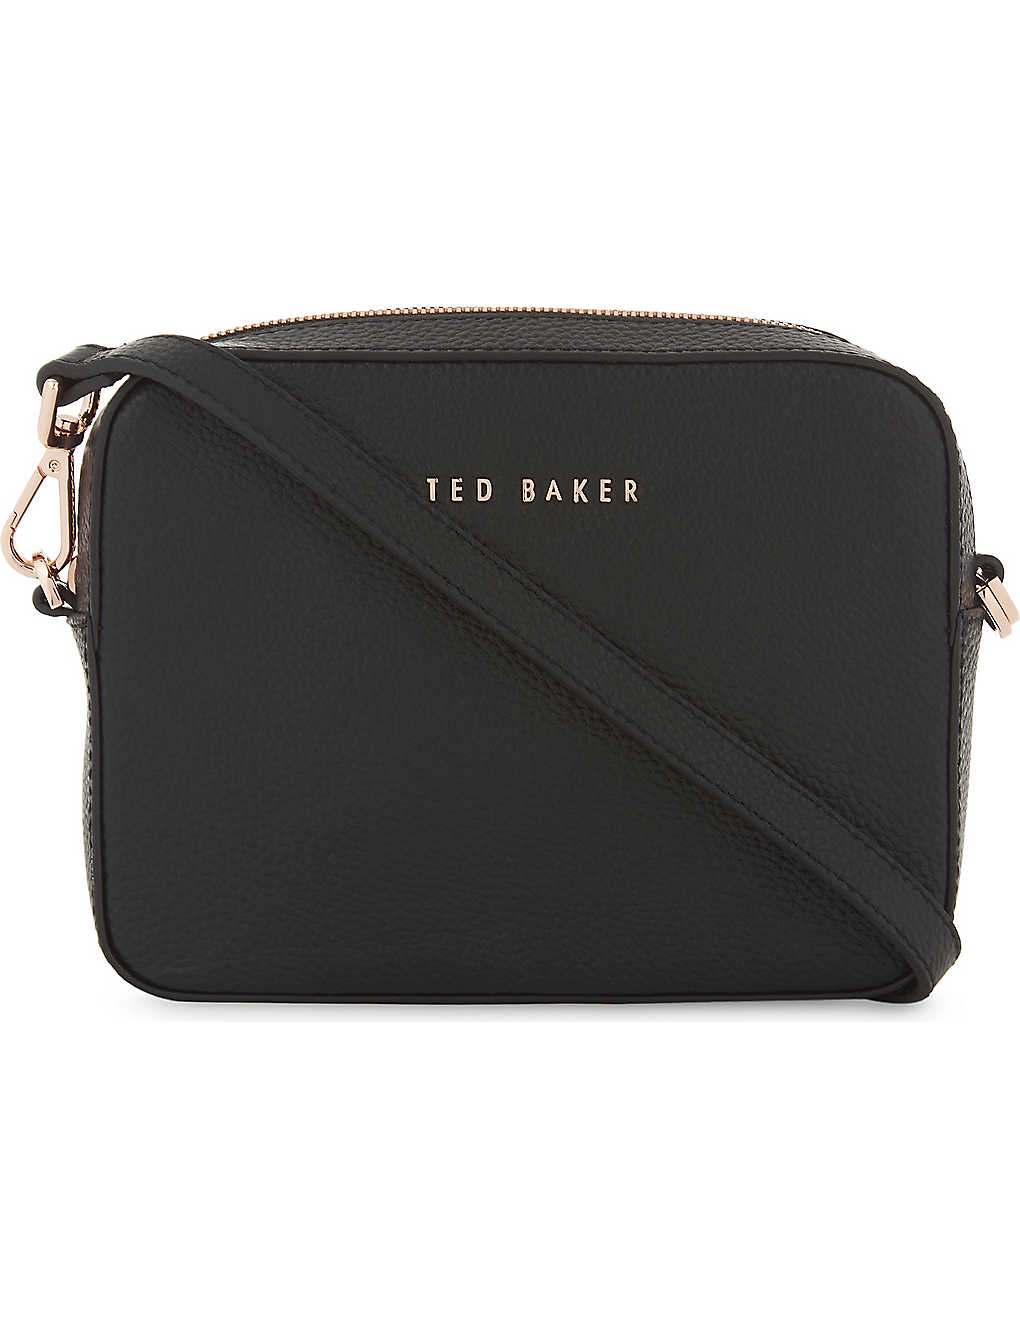 ea7fc0c34dd TED BAKER - Darwina metallic leather camera bag | Selfridges.com